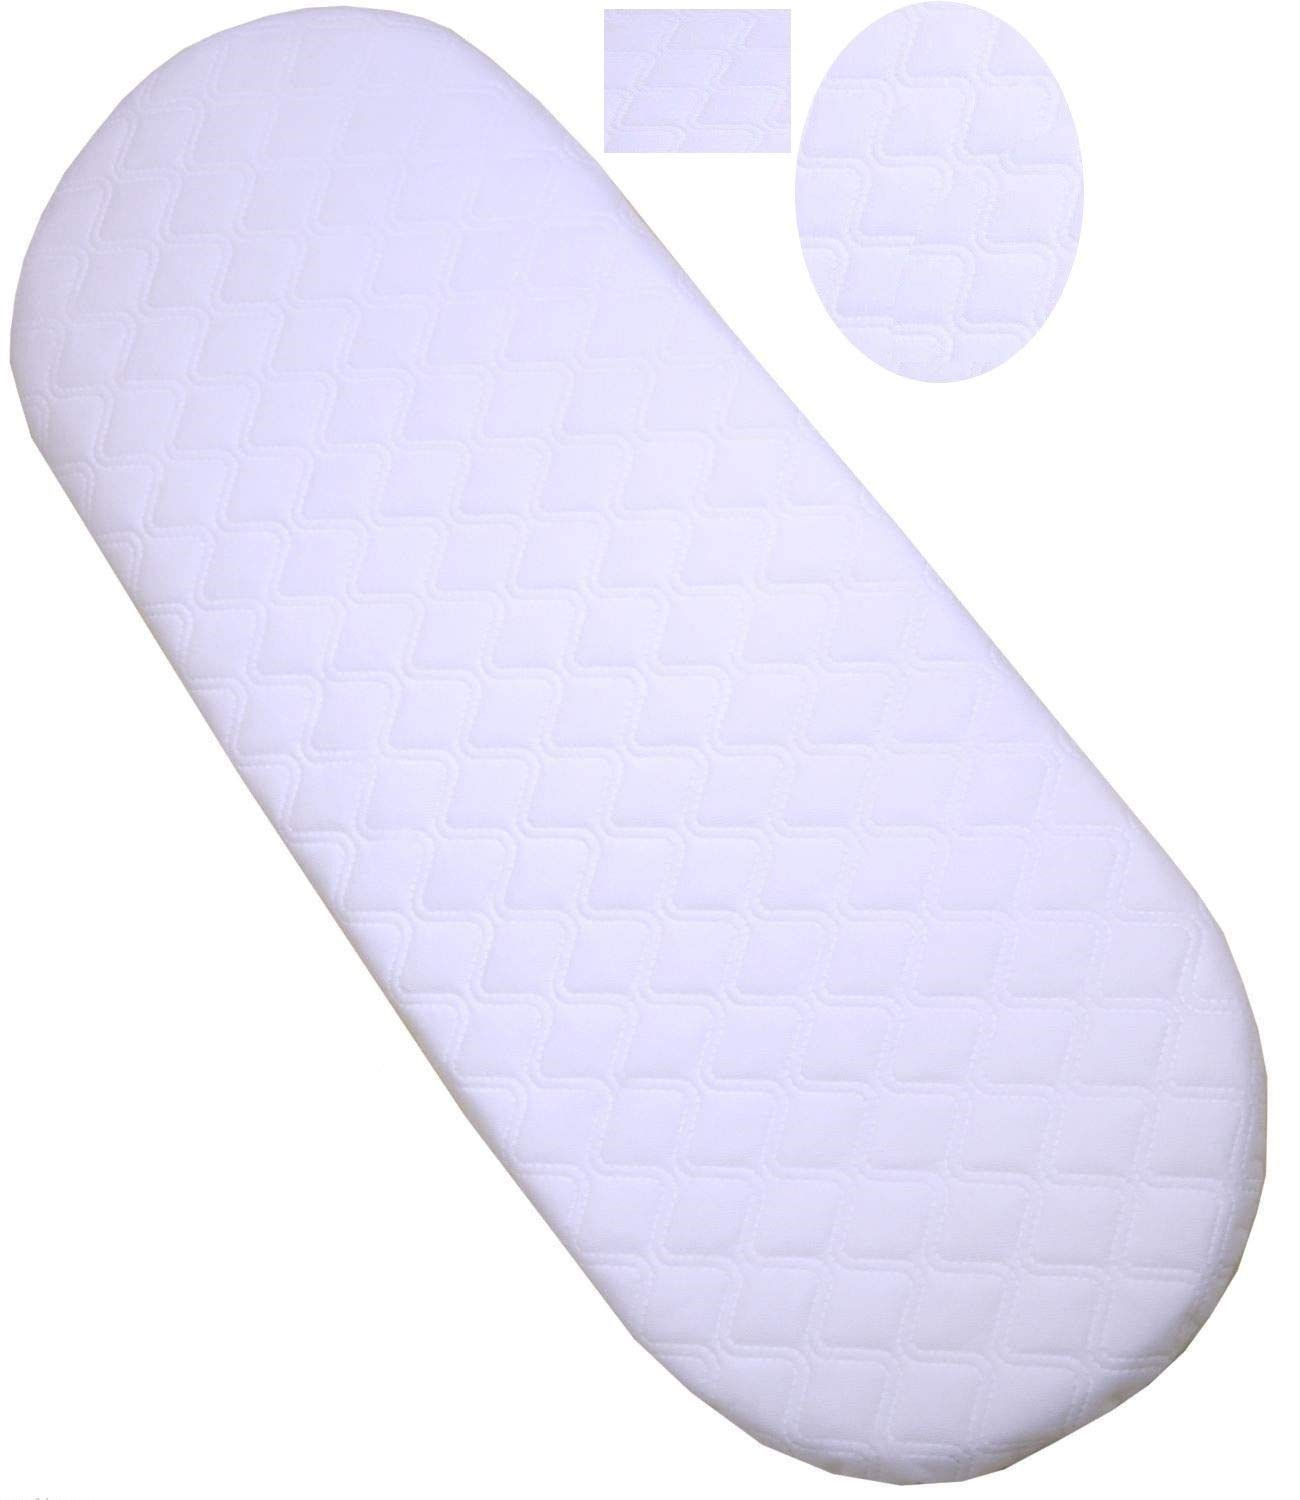 75 X 33 X 3.5 cm Moses Basket Foam Mattress Bassinet Baby PRAM Oval Fully Breathable Quilted Size